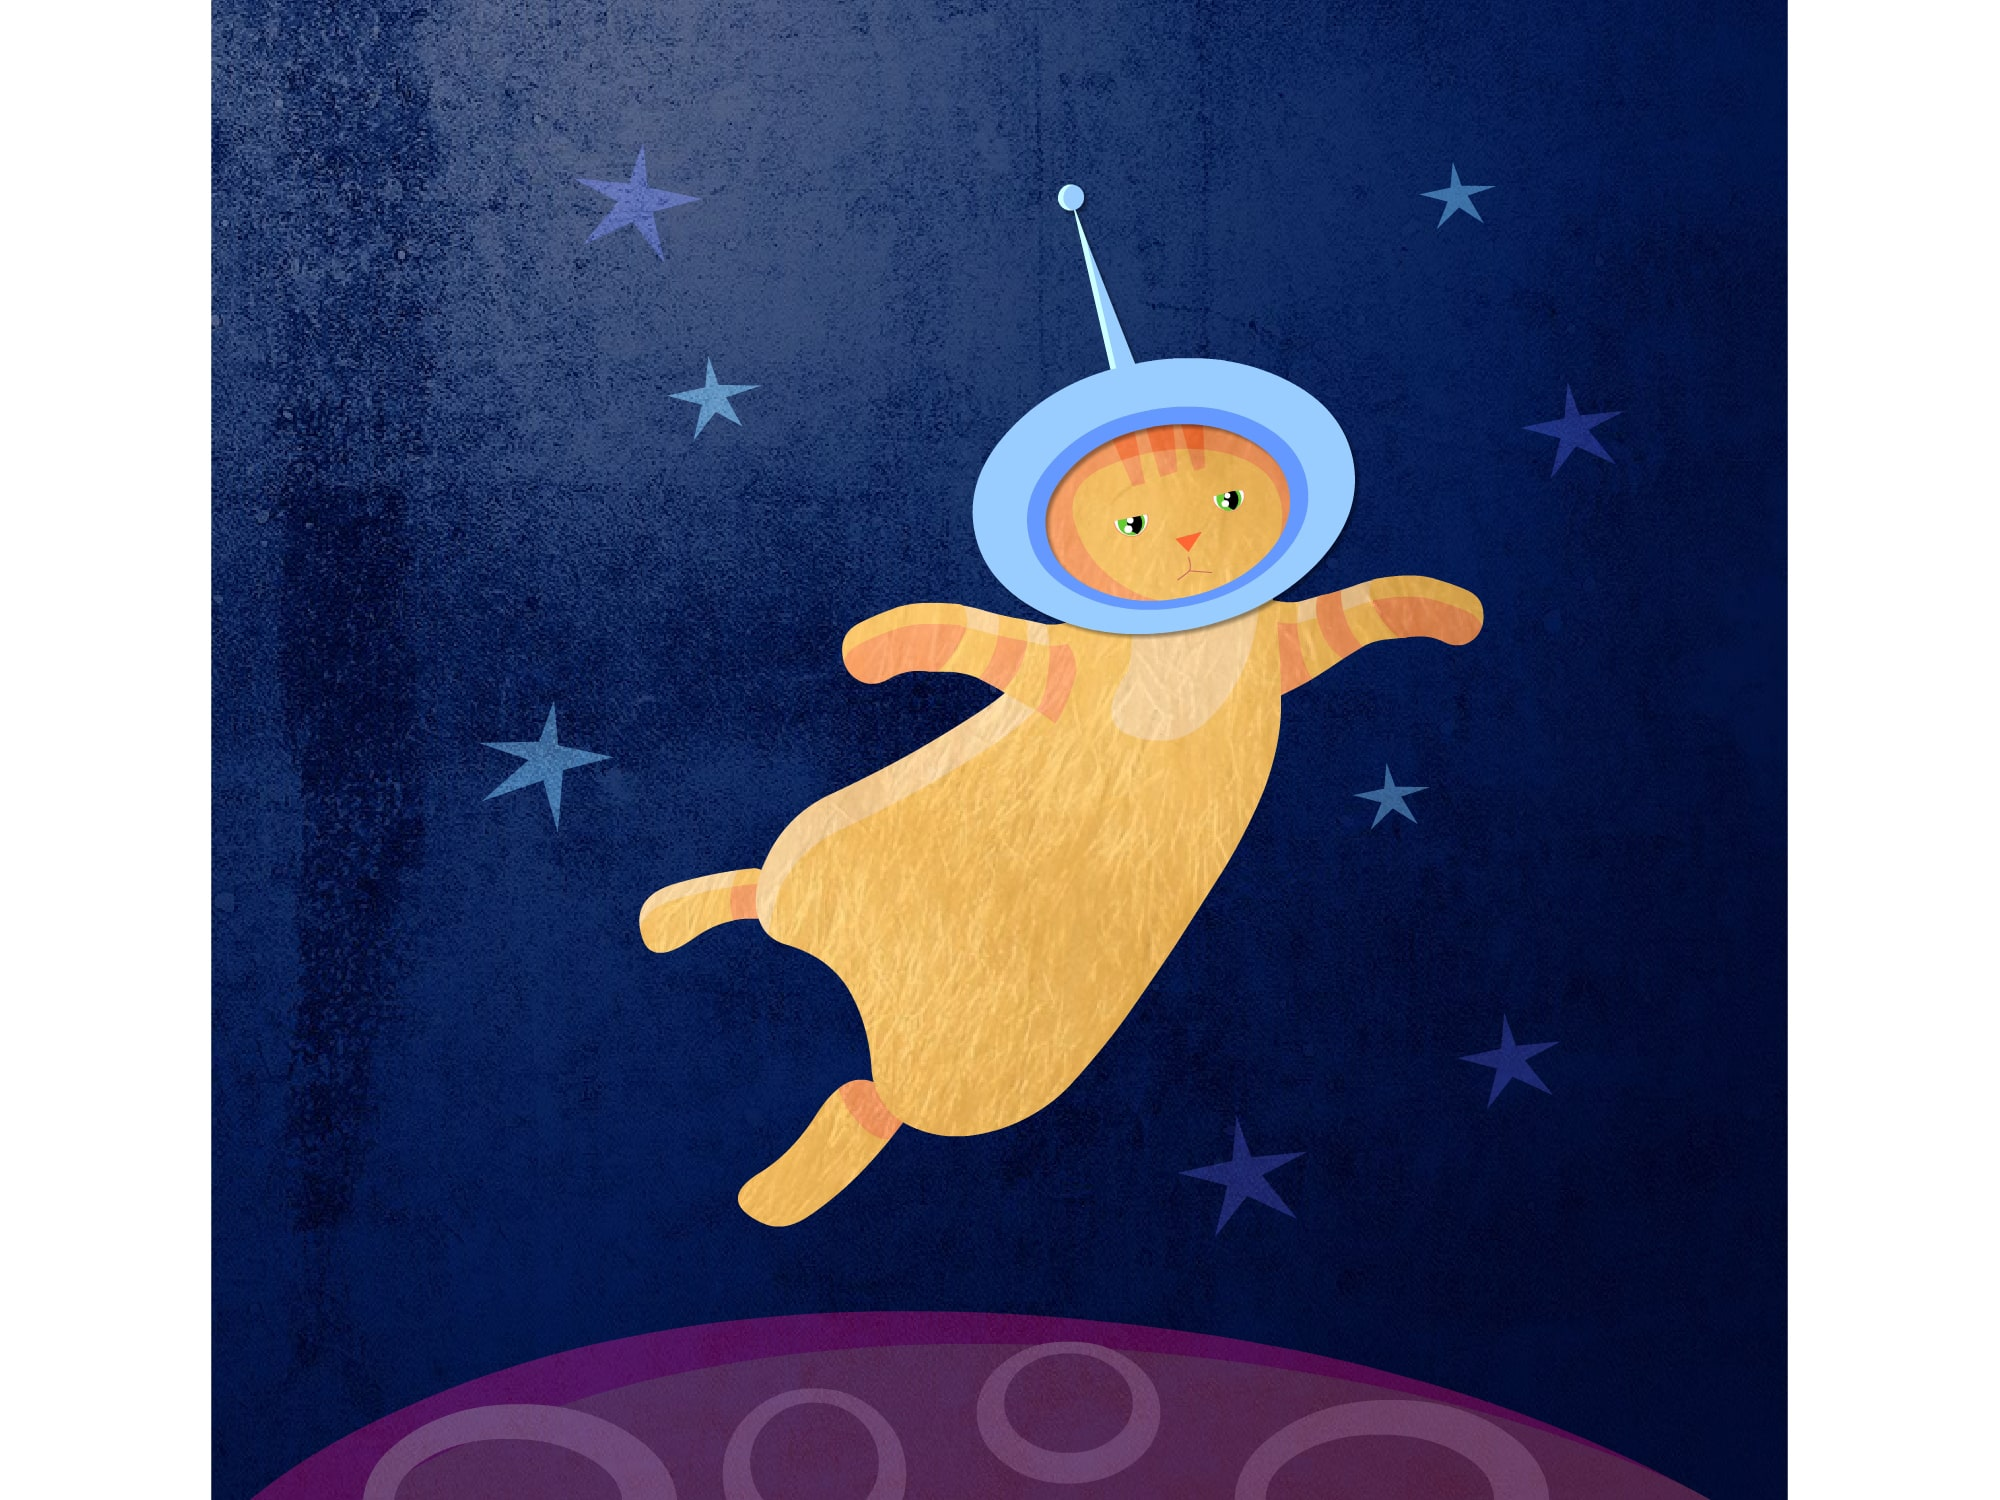 Space cat illustration - Luella Jane